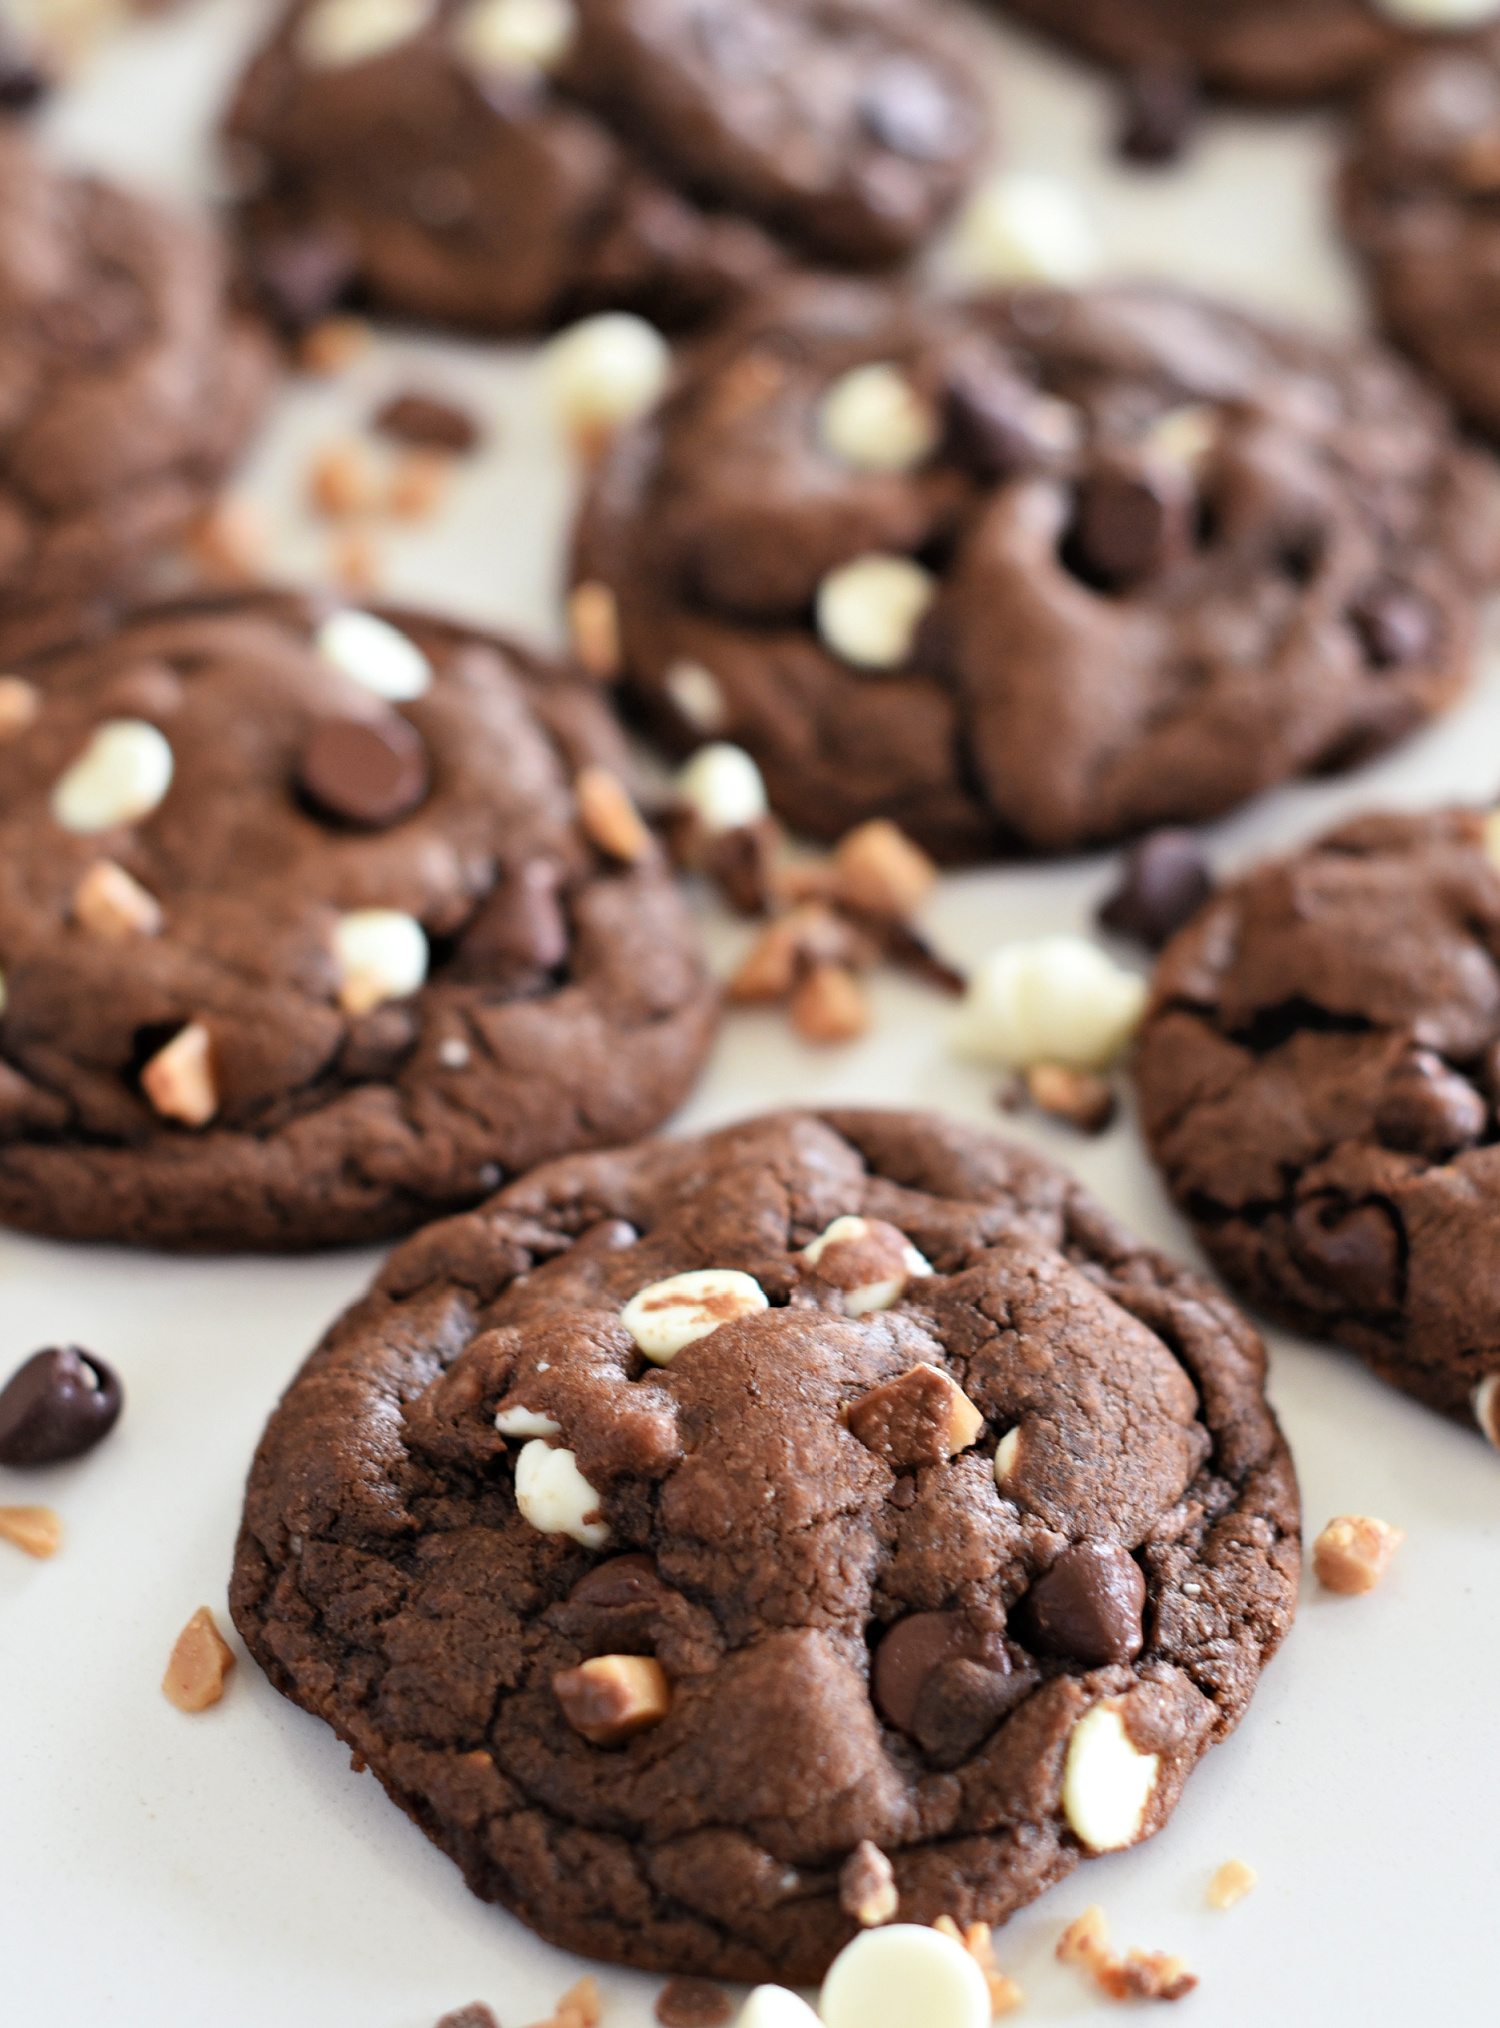 Triple Chocolate Toffee Cookies: White chips, chocolate chips, and toffee bits in a soft and chewy chocolate cookie.